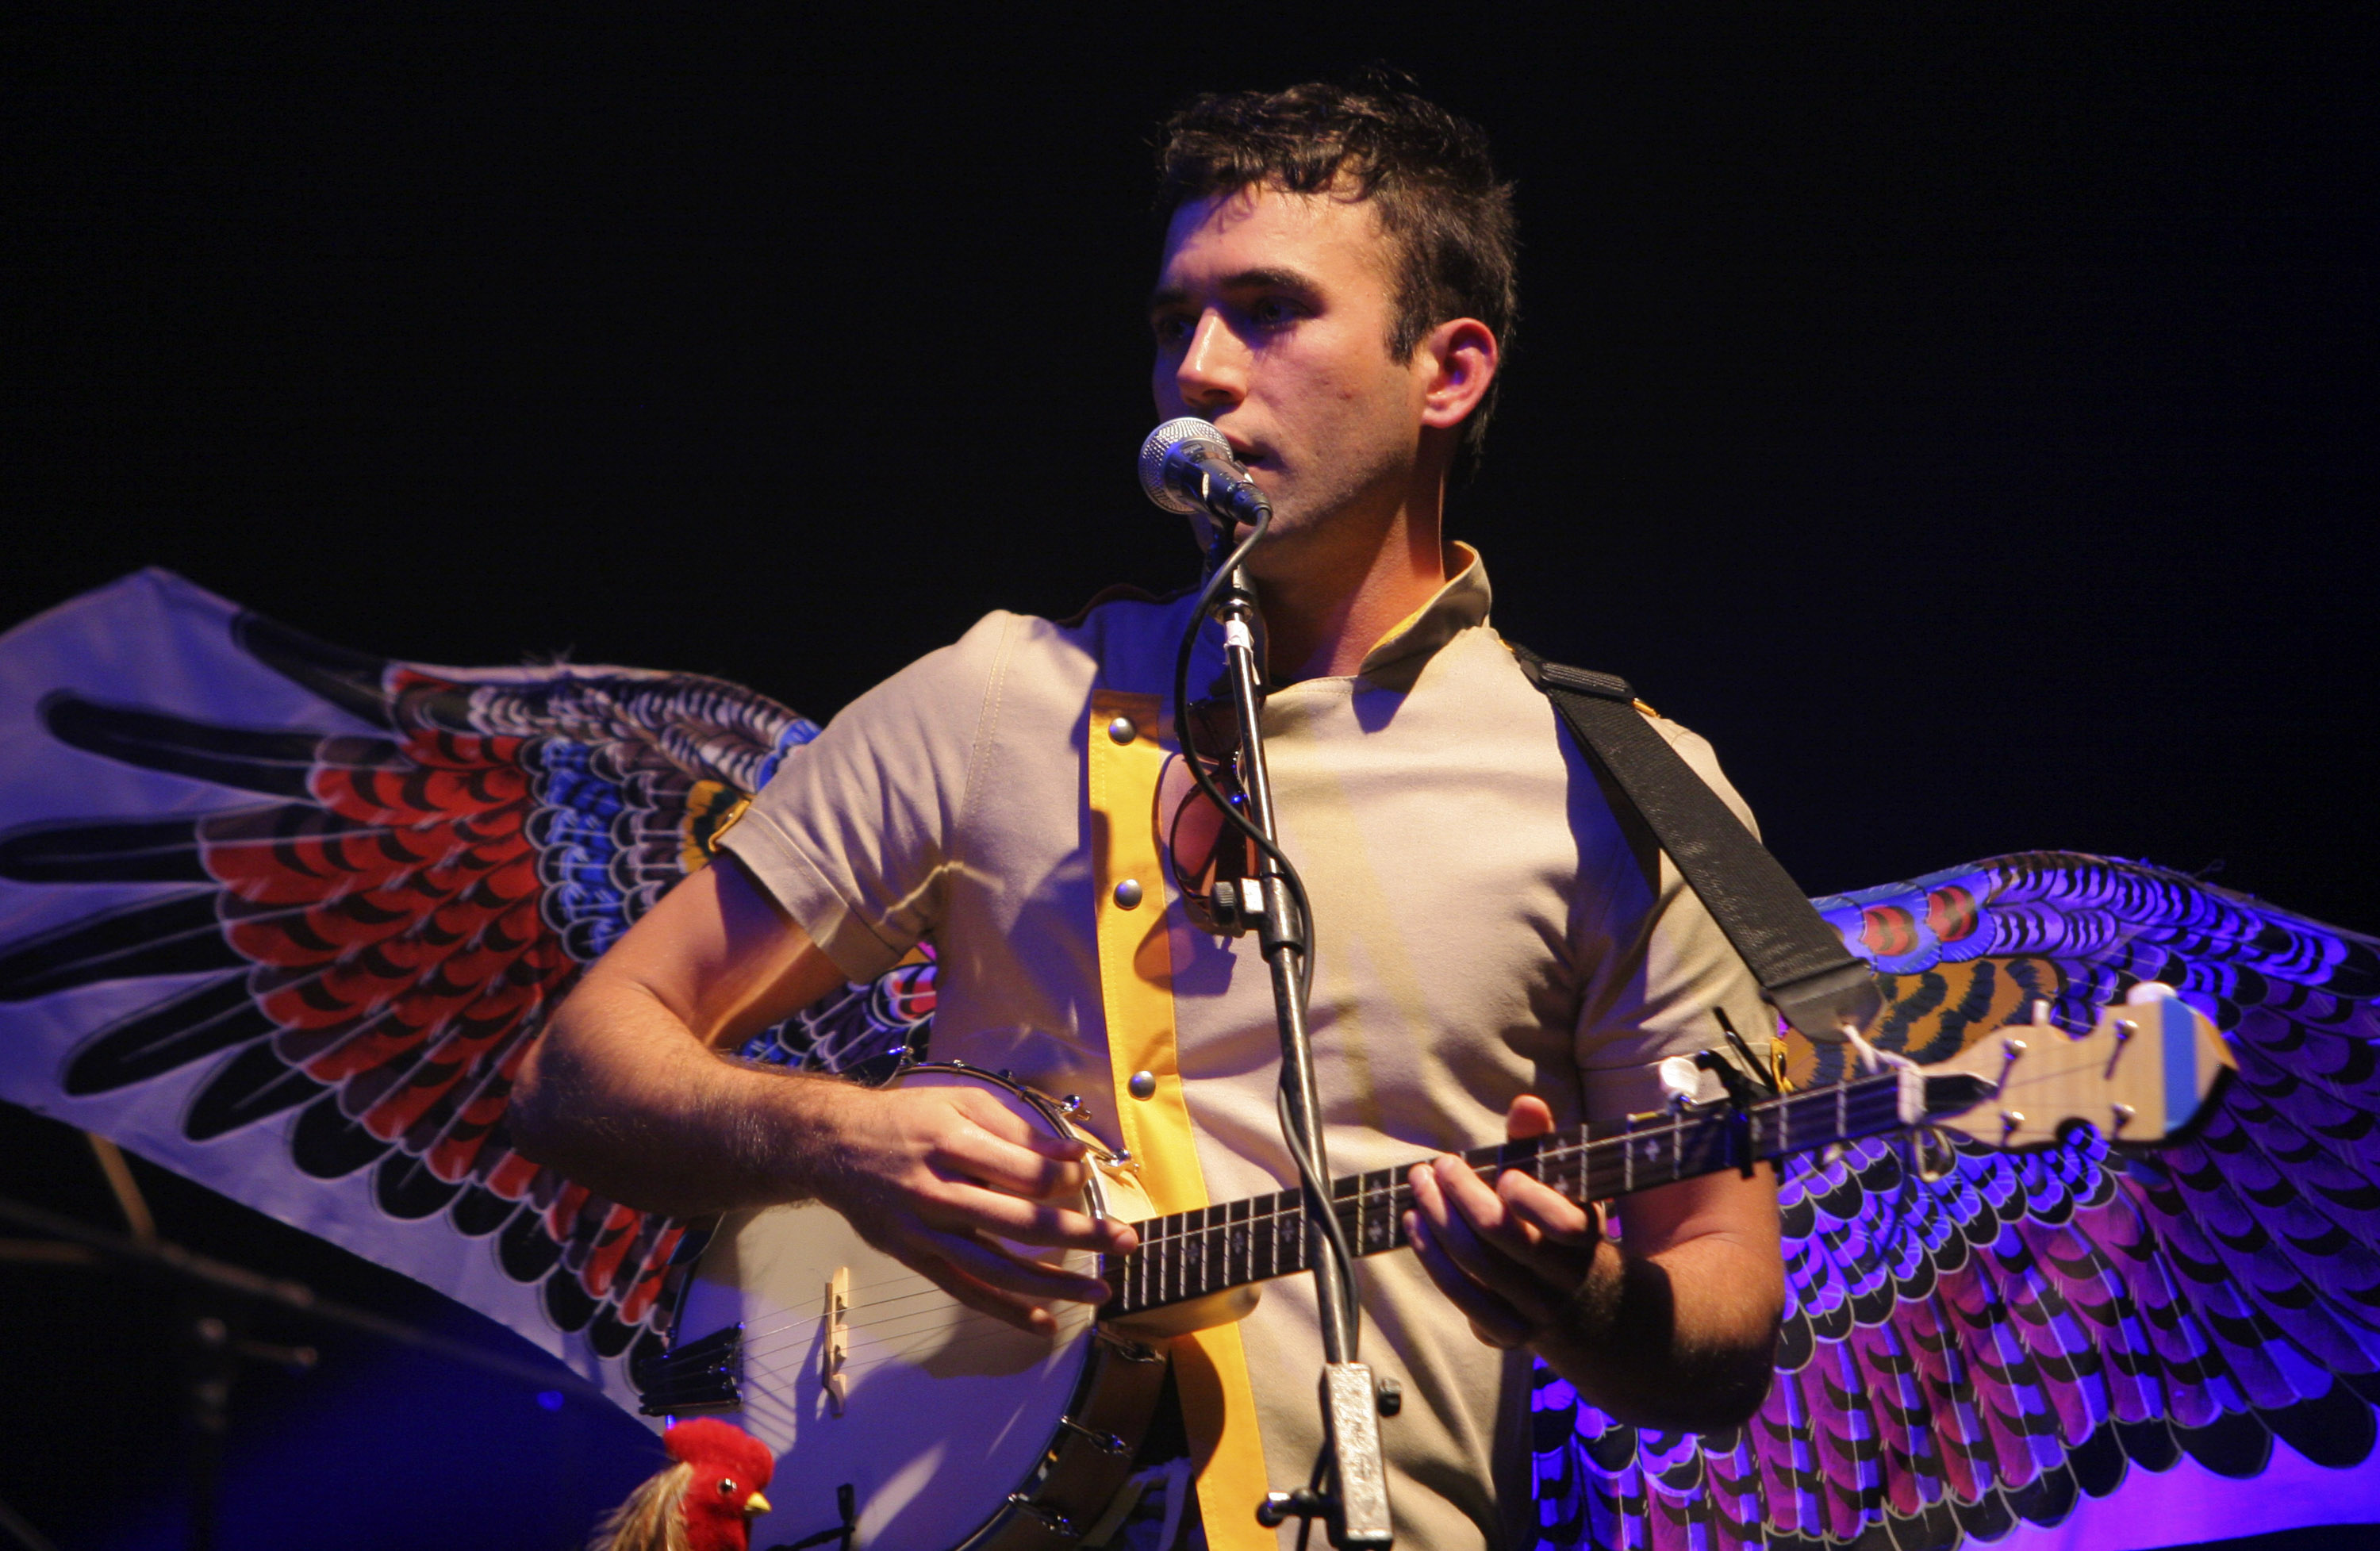 Sufjan Stevens during Sufjan Stevens in Concert - October 9, 2006 at Wiltern in Los Angeles, California, United States. (Photo by Rebecca Sapp/WireImage)